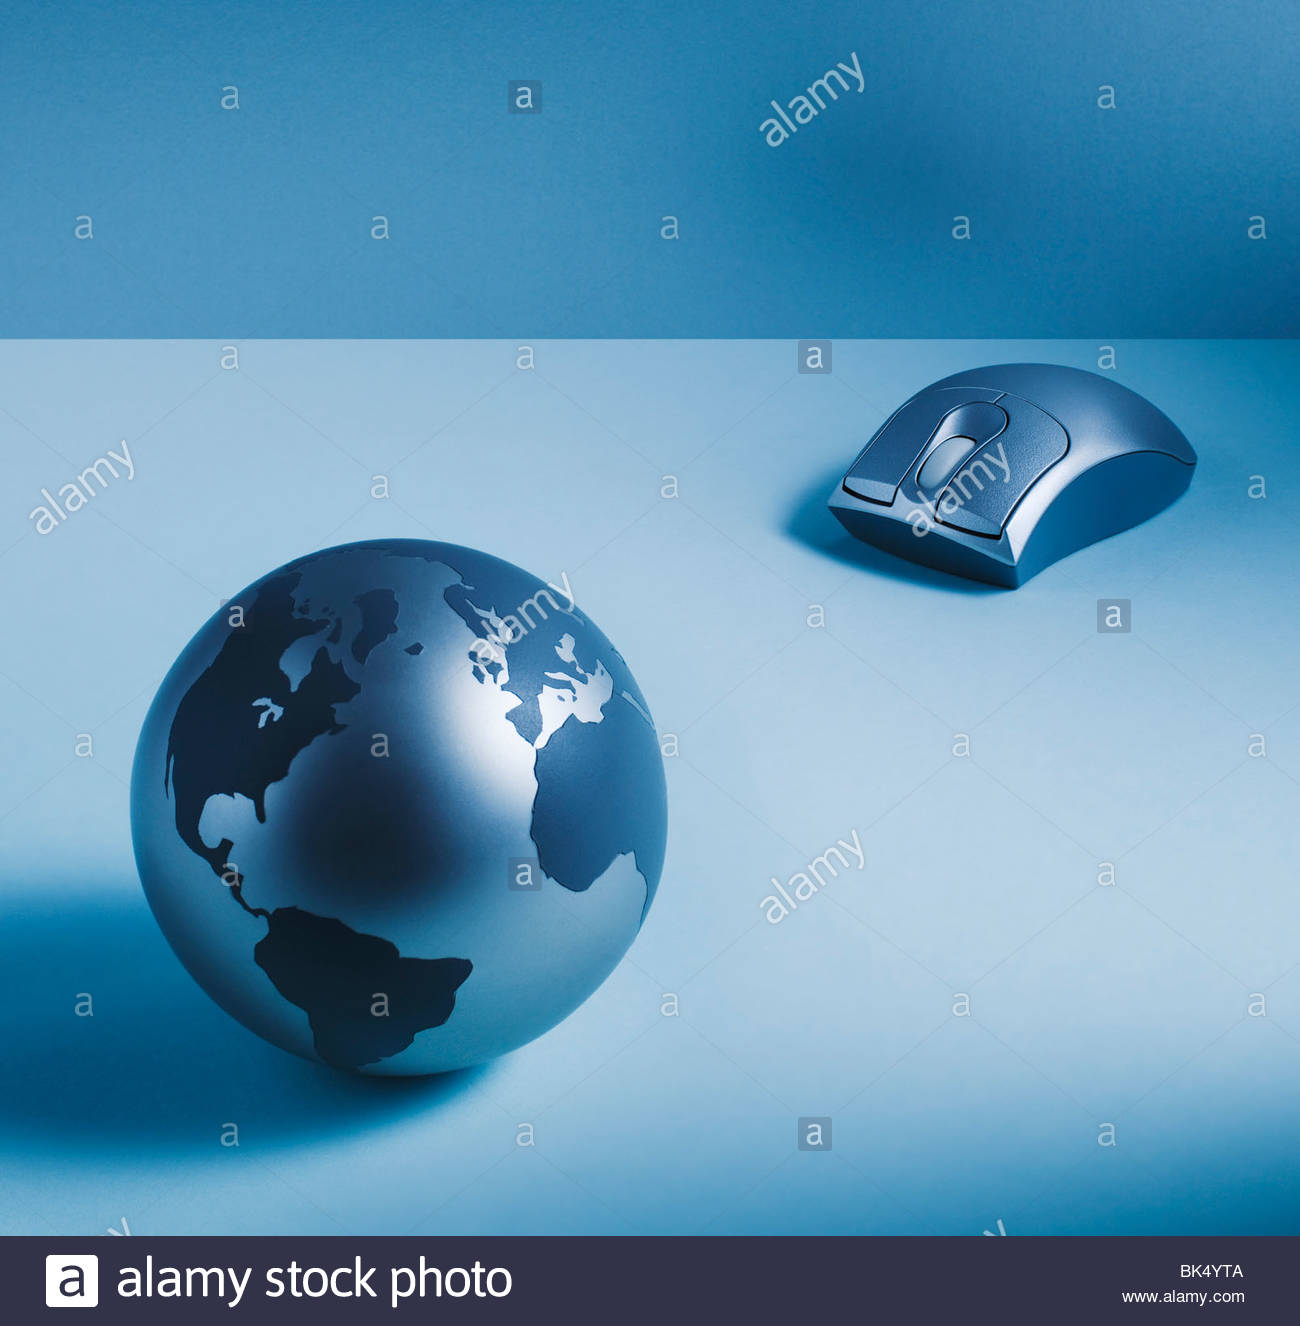 Metal globe and wireless computer mouse - Stock Image